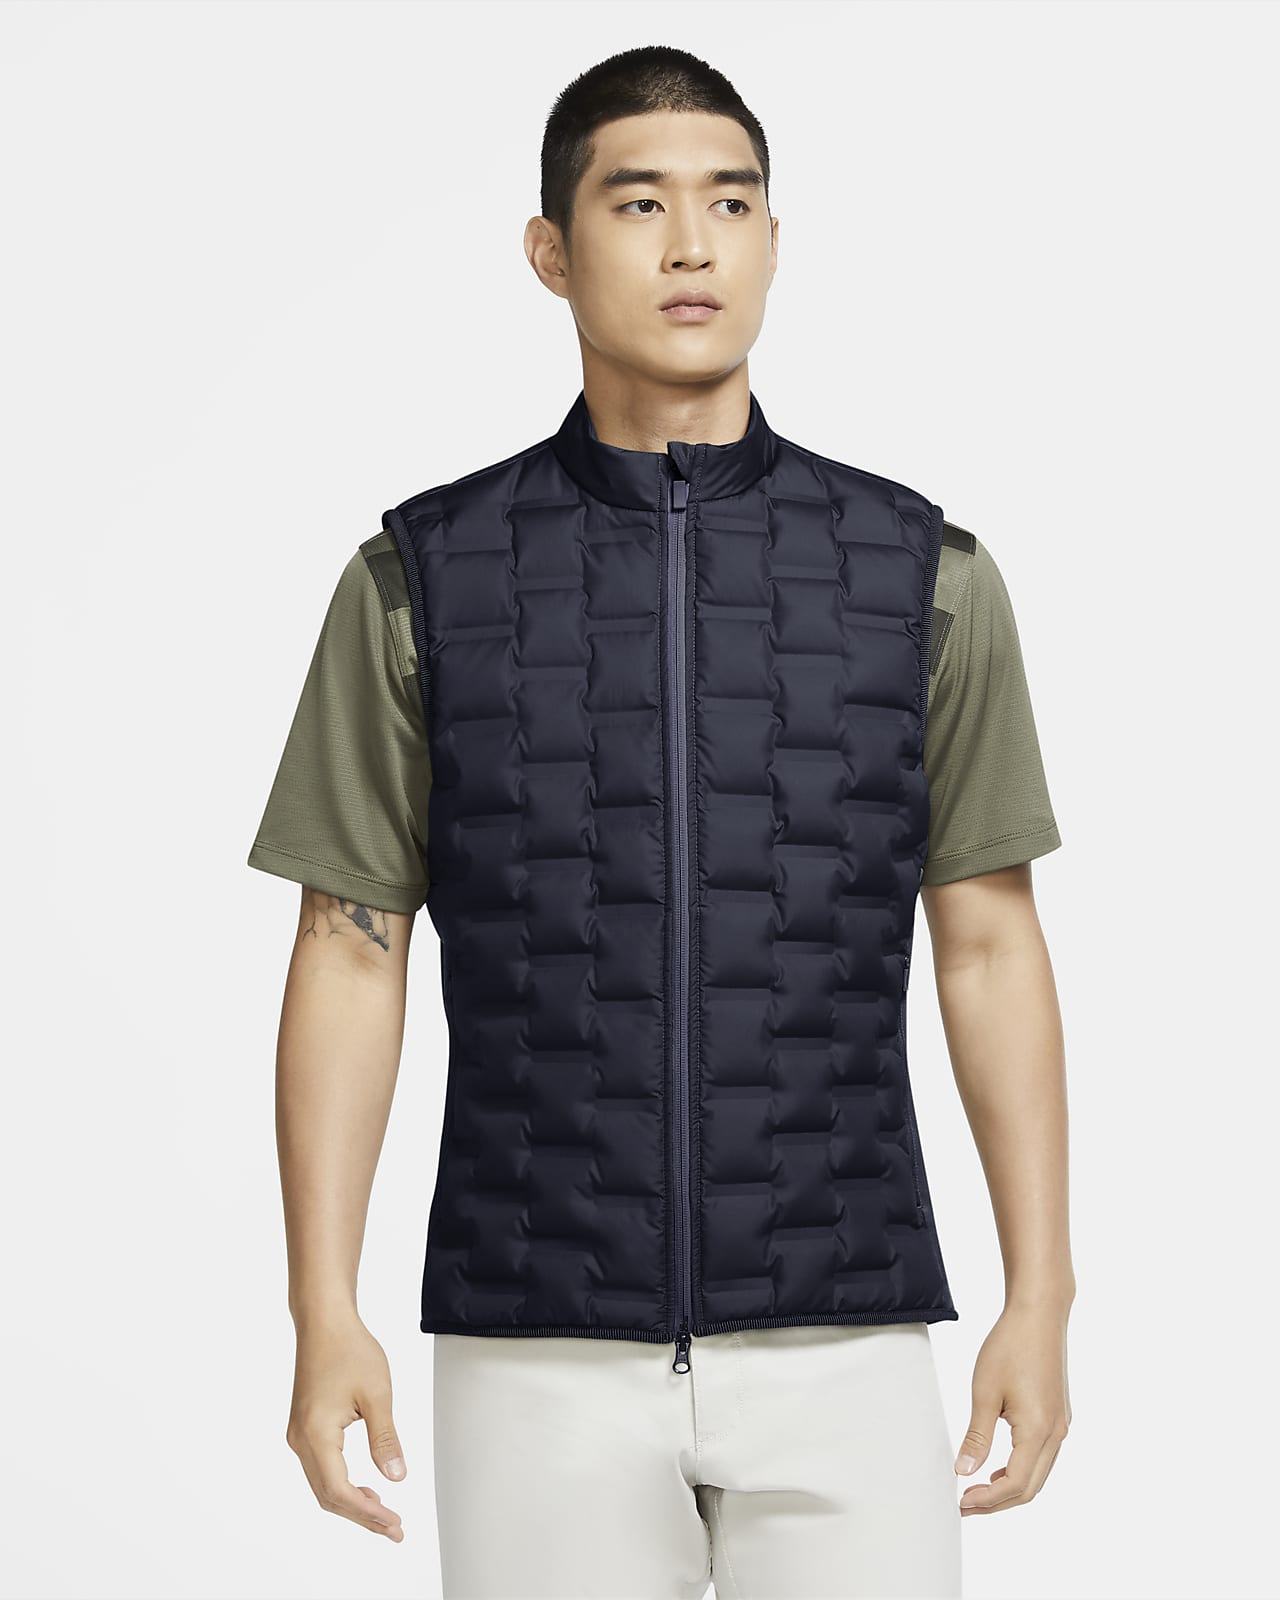 Nike AeroLoft Repel Men's Golf Gilet